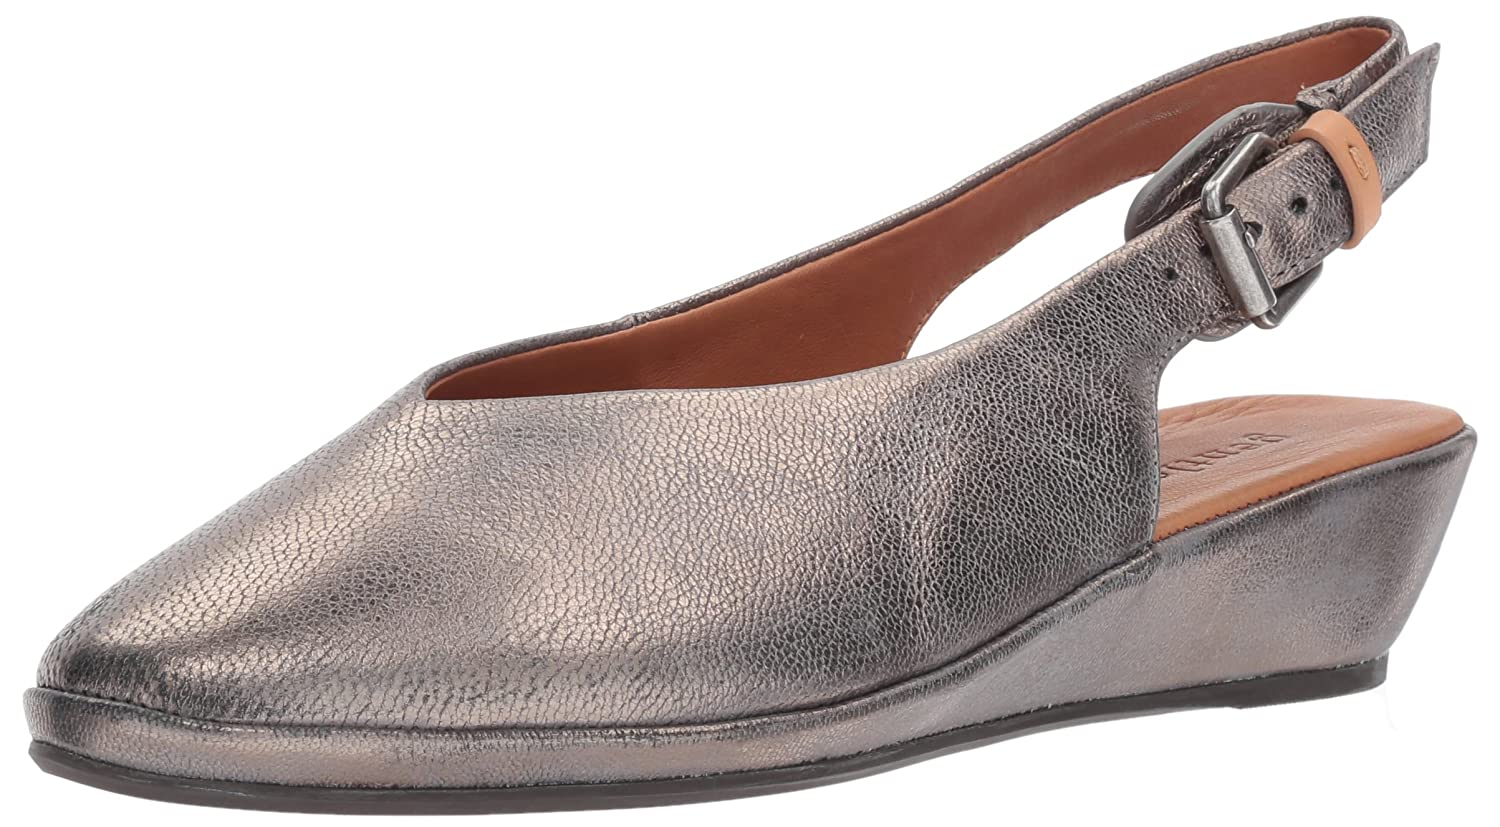 Gentle Souls by Kenneth Cole Women's Noemi Round Toe Low Wedge Slingback - Leather Flat B01MR9FQJM 8.5 B(M) US|Pewter